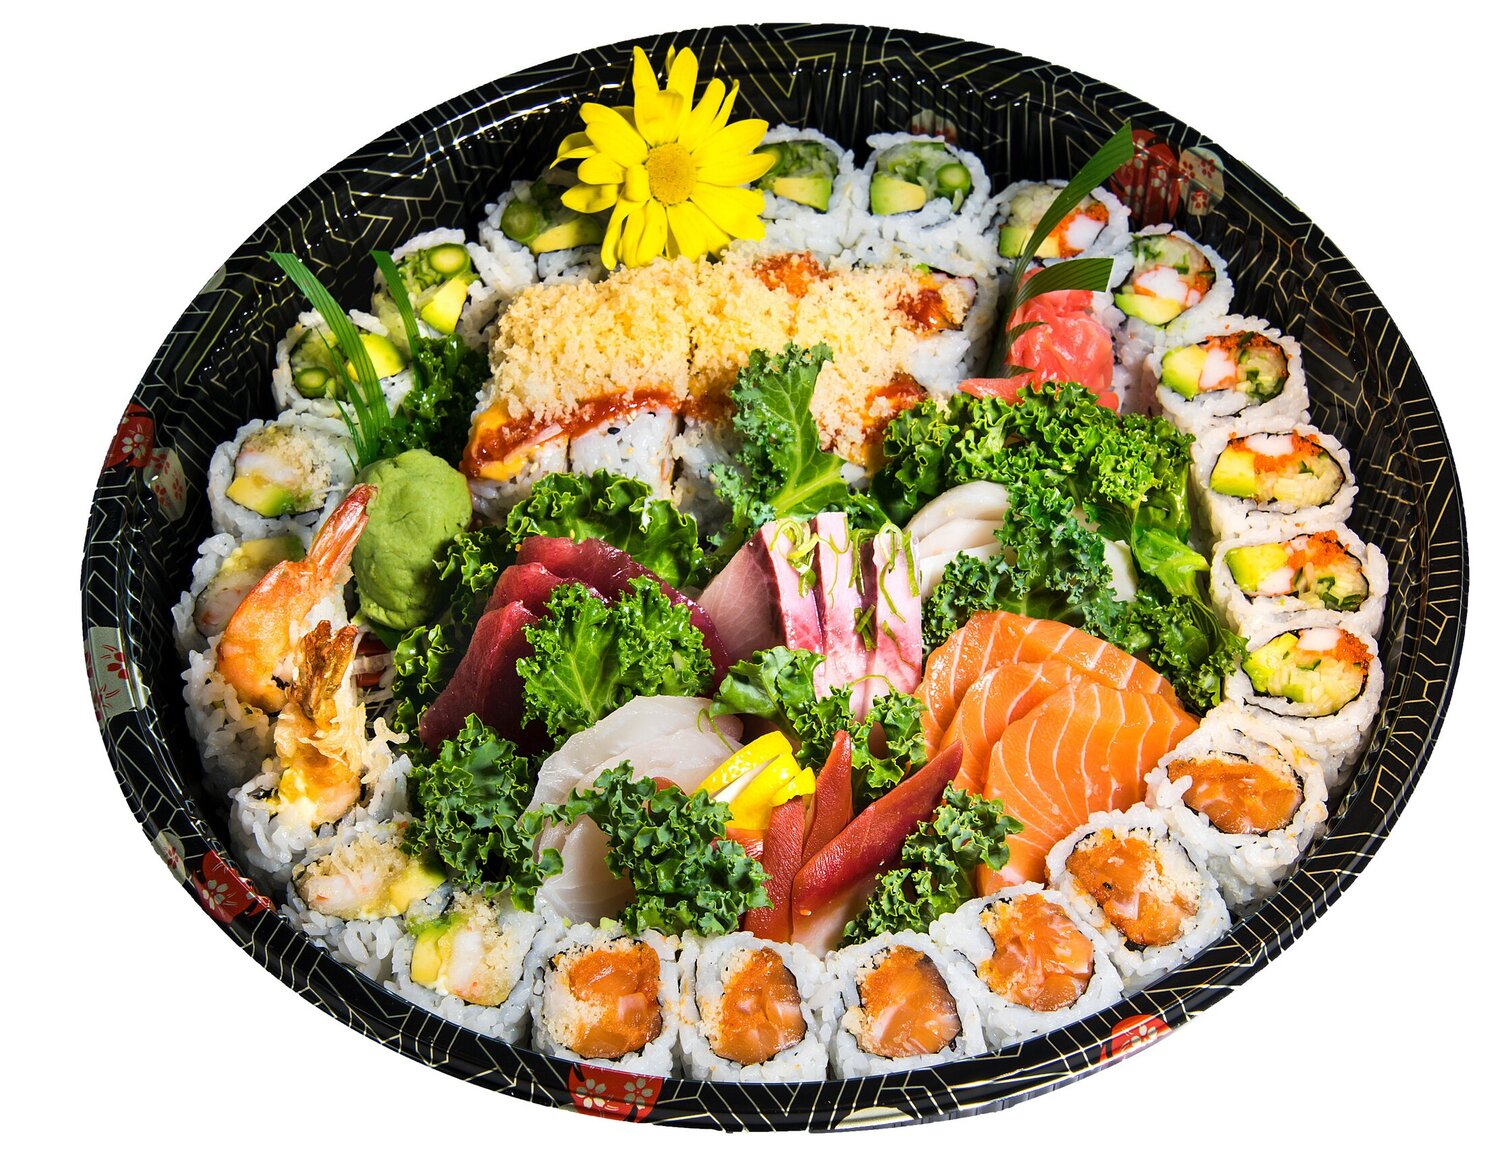 Party Tray (A2)   Sashimi (18) Dynamite Roll (6)  Spicy Salmon Roll (6) California Roll (6)  CAA Roll (6) Volcano (8)